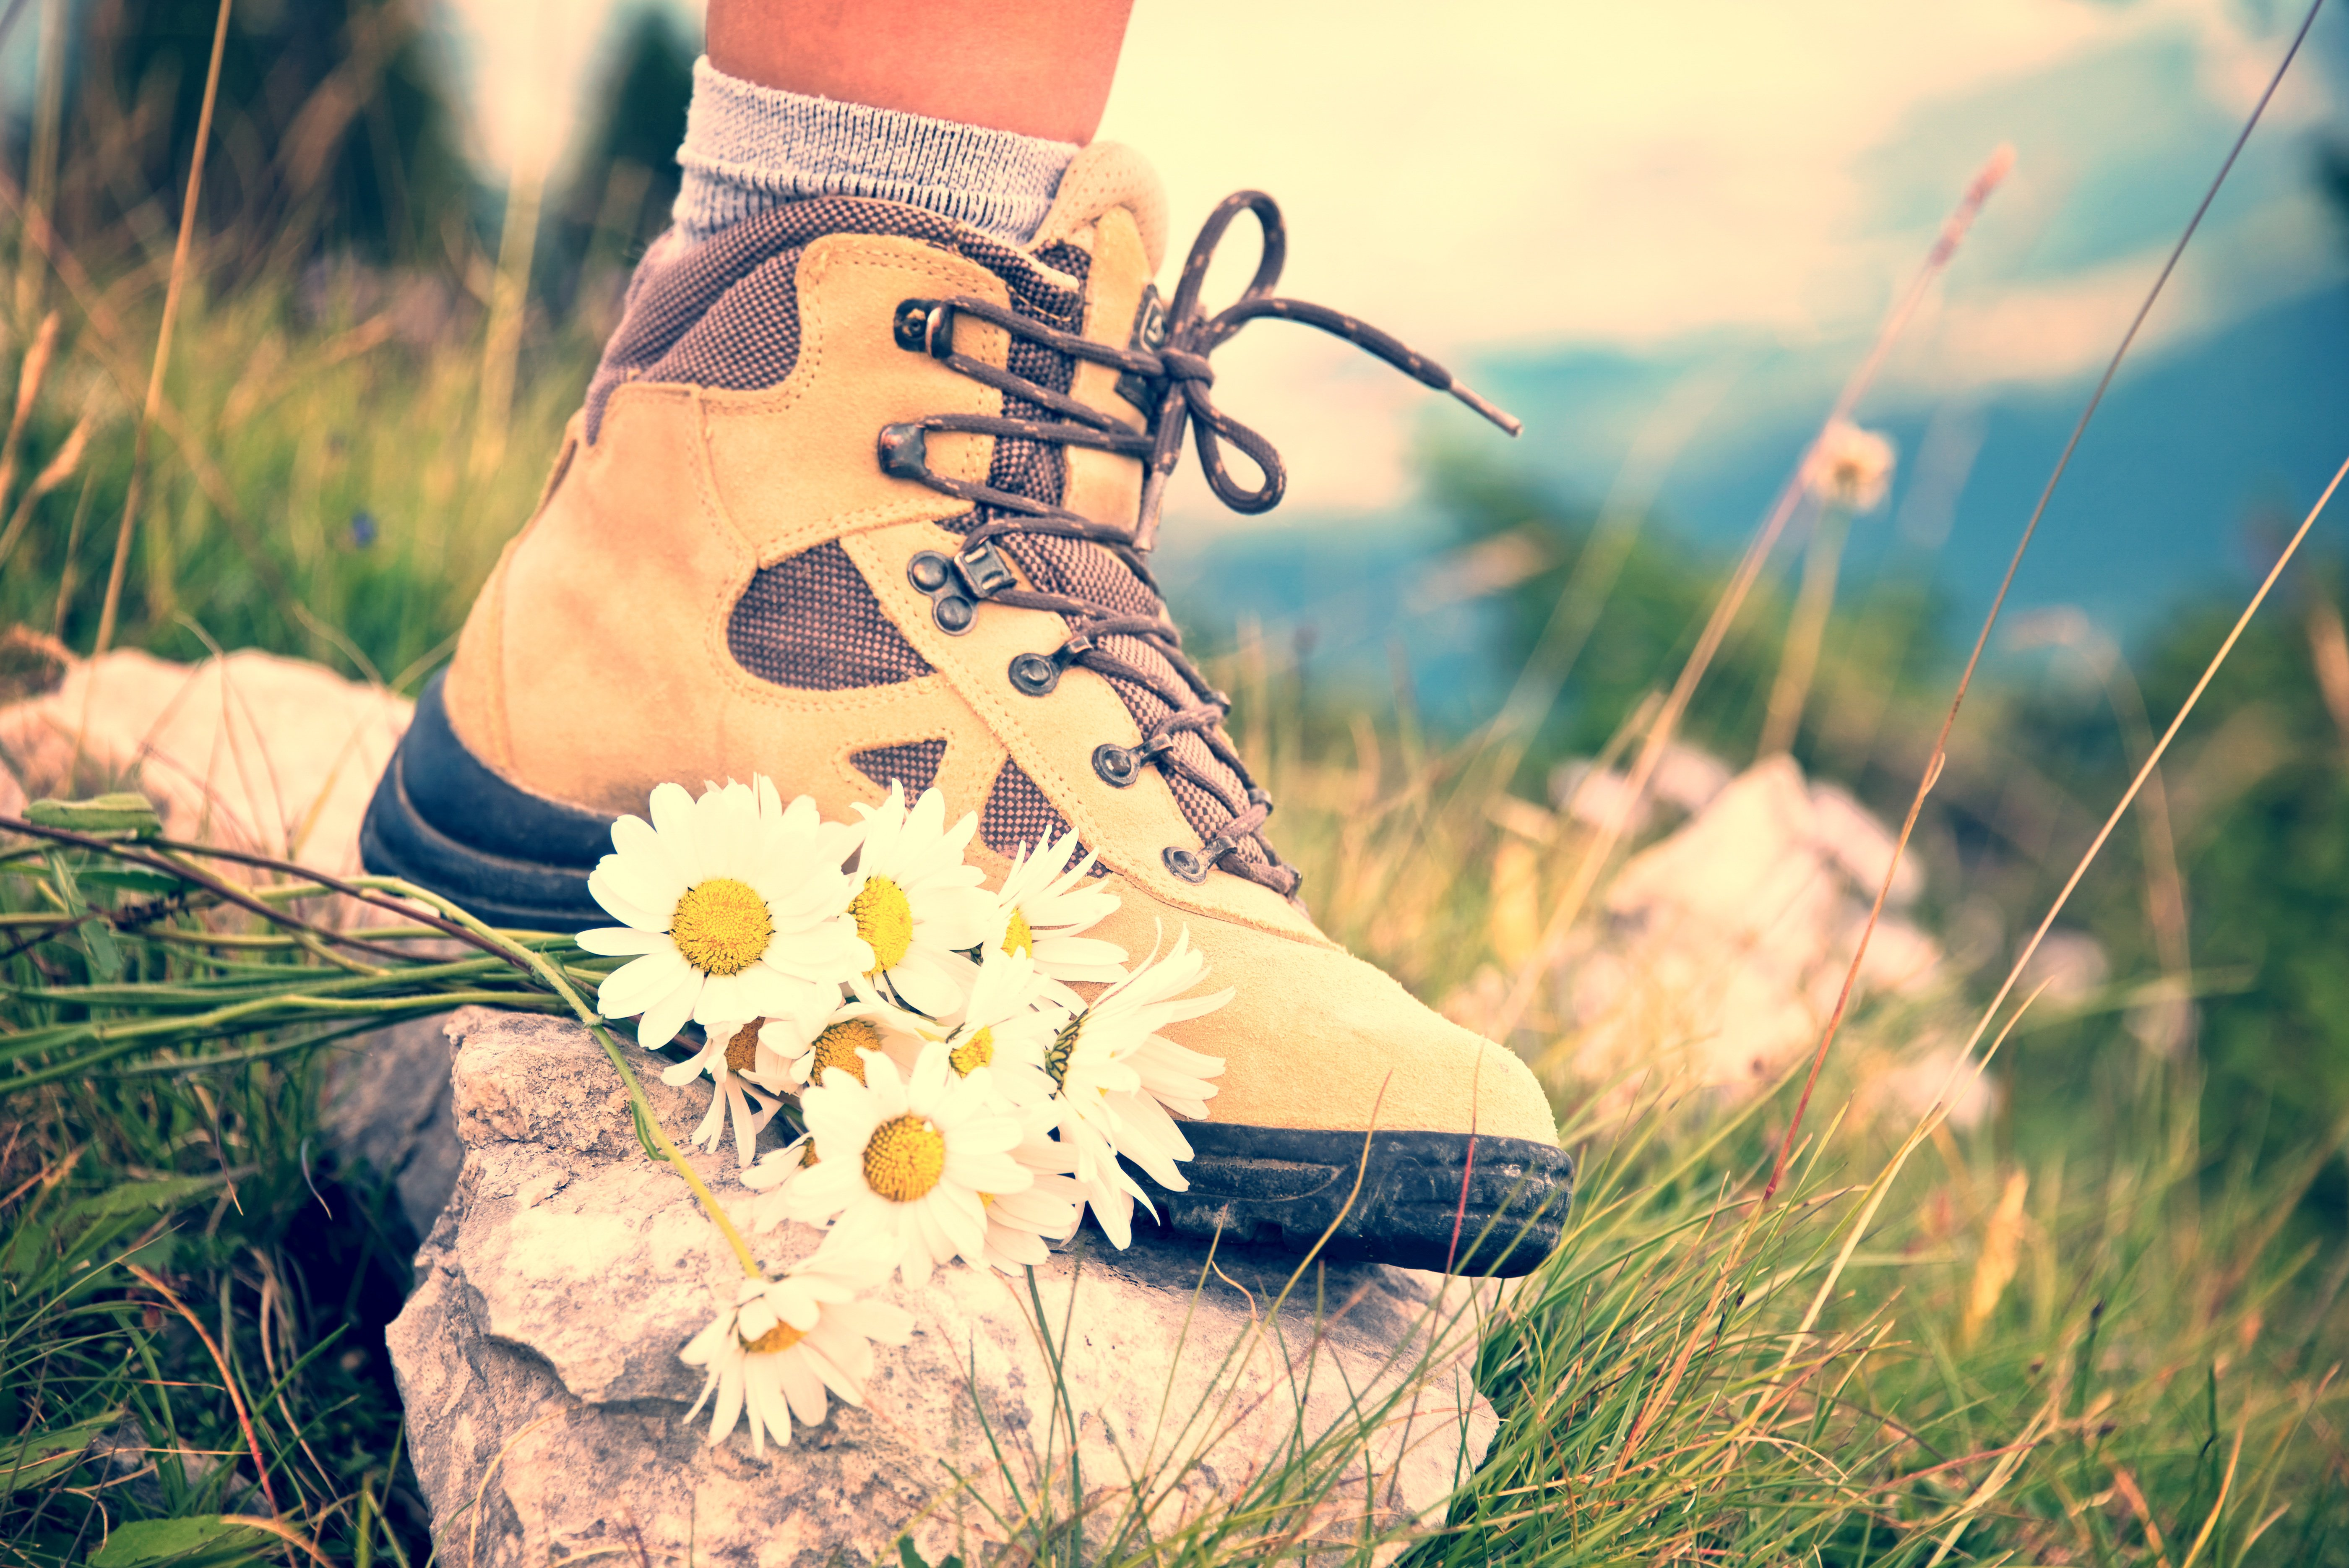 When to see a Podiatrist: Hiking Related Injuries